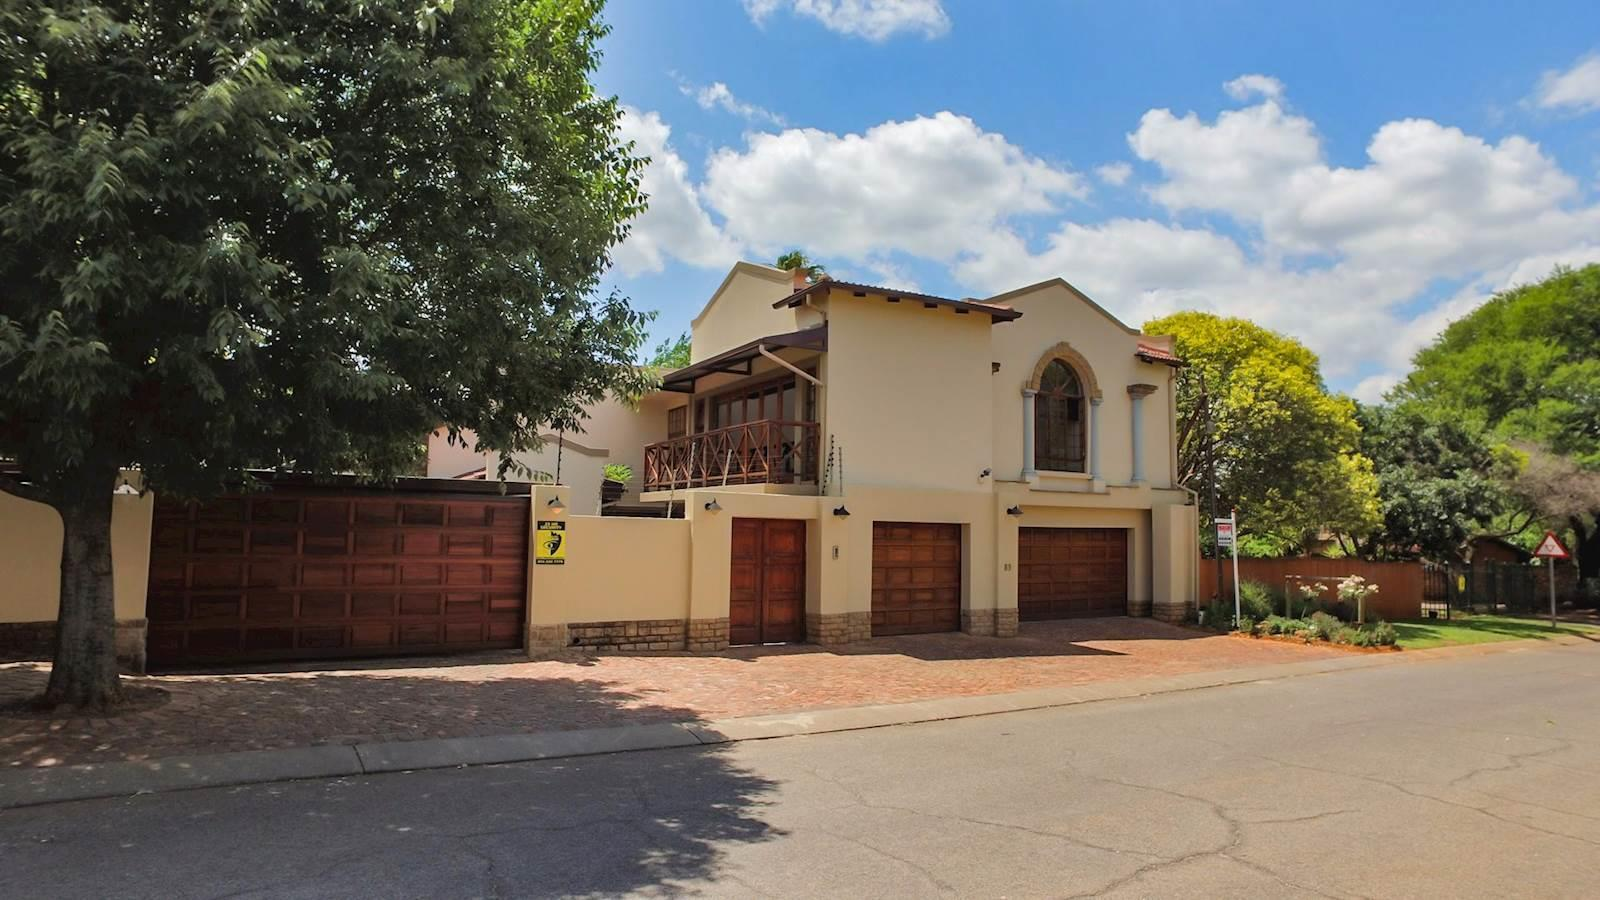 Centurion, Doringkloof Property  | Houses For Sale Doringkloof, Doringkloof, House 3 bedrooms property for sale Price:2,450,000